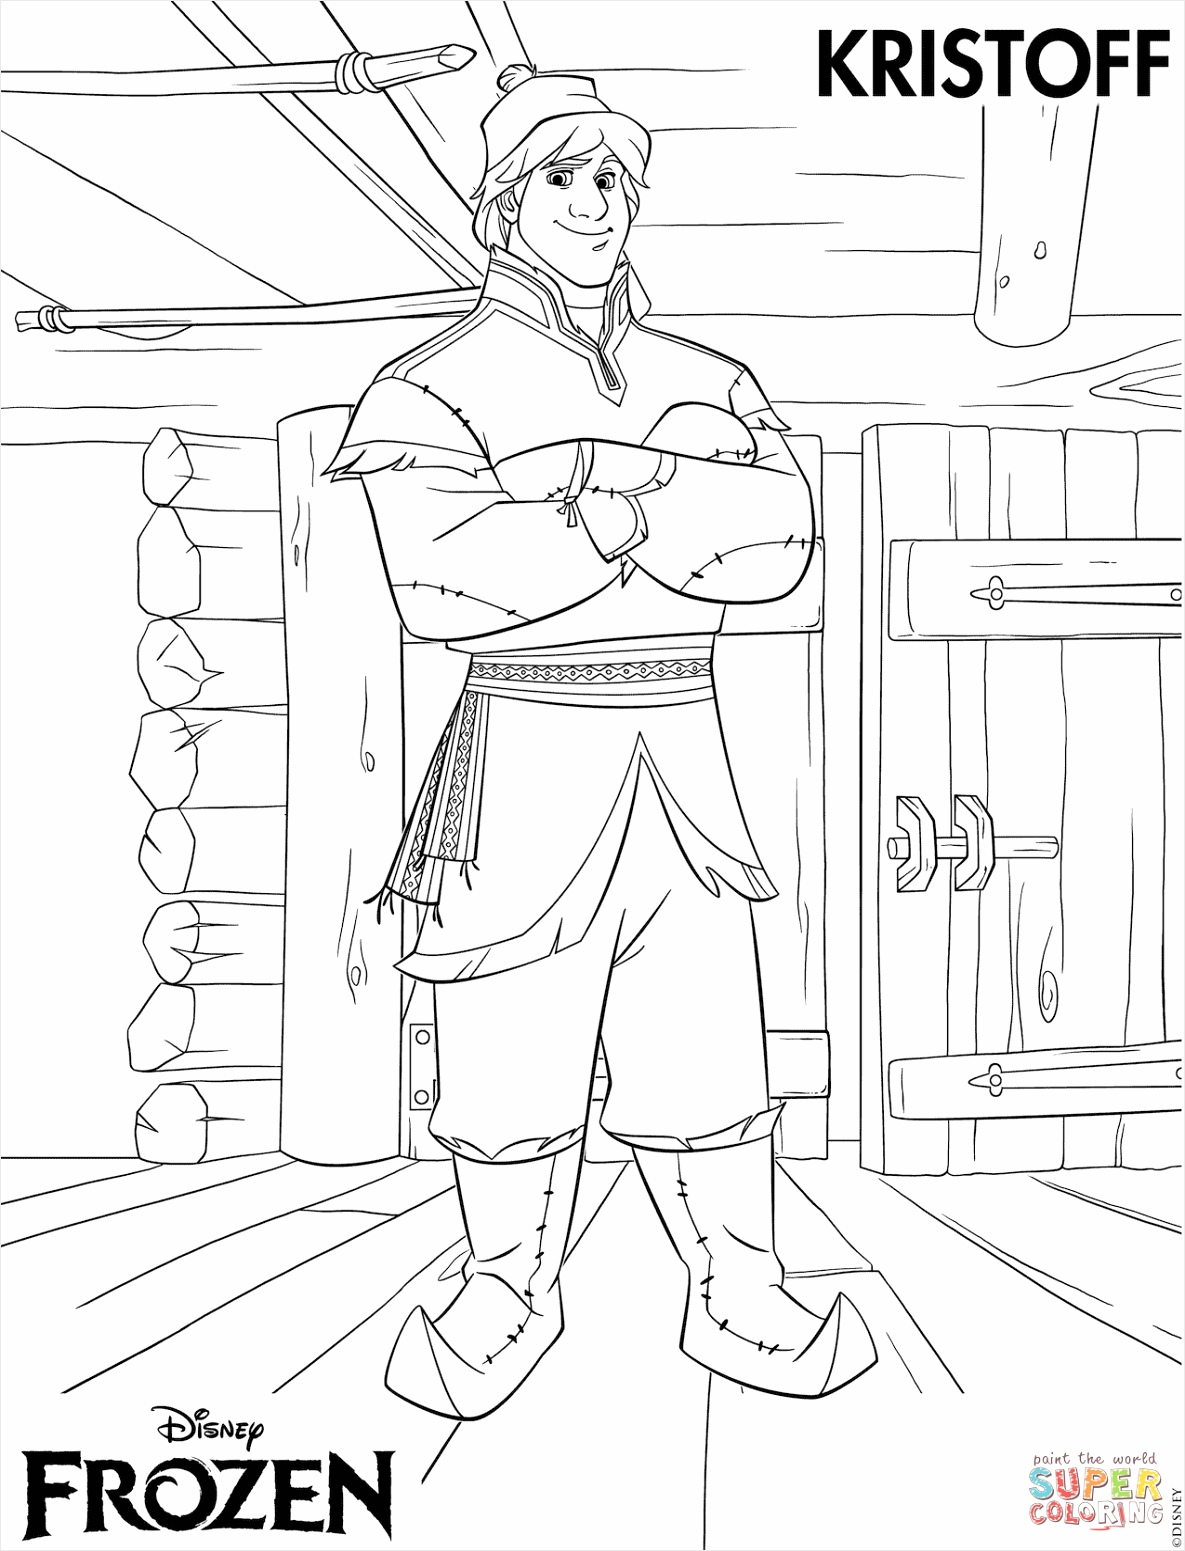 kristoff from frozening page elsa the pages free to print uwyyg